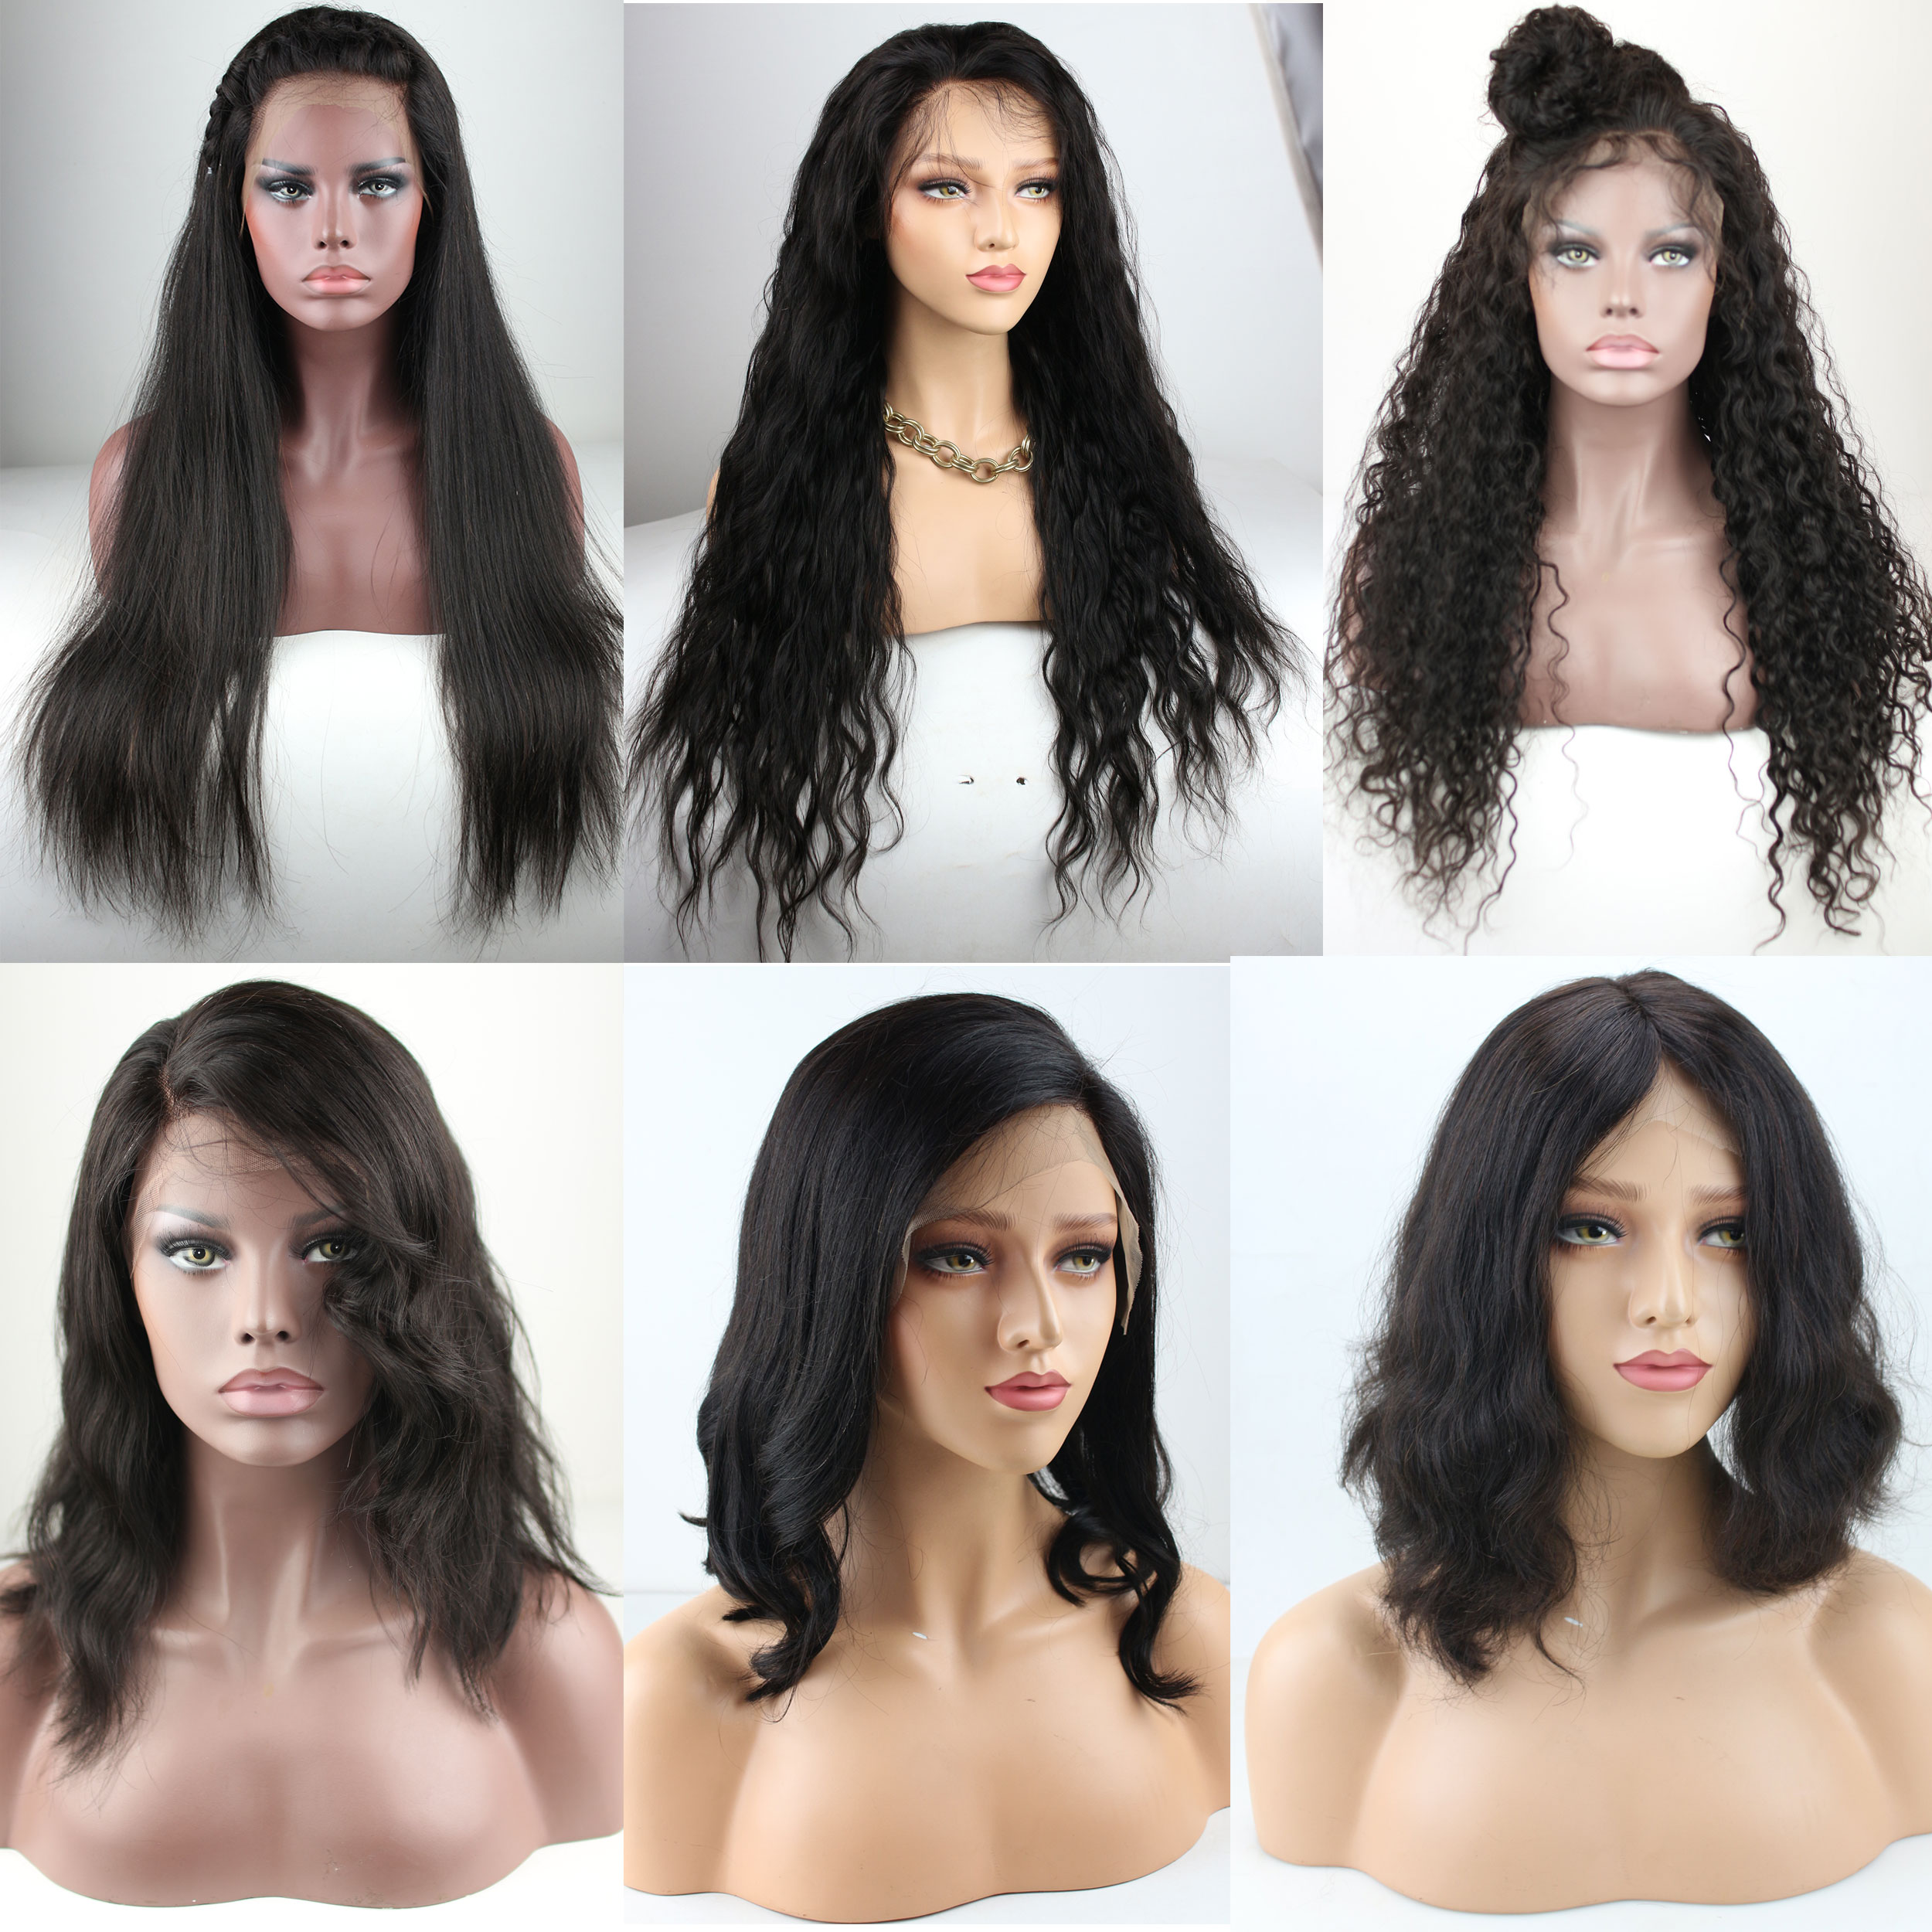 Bob Lace Front Wigs Human Hair Cheap Bob Wigs For Black Women Middle Part Lace Front Wigs Bob Brazilian Vrigin Hair